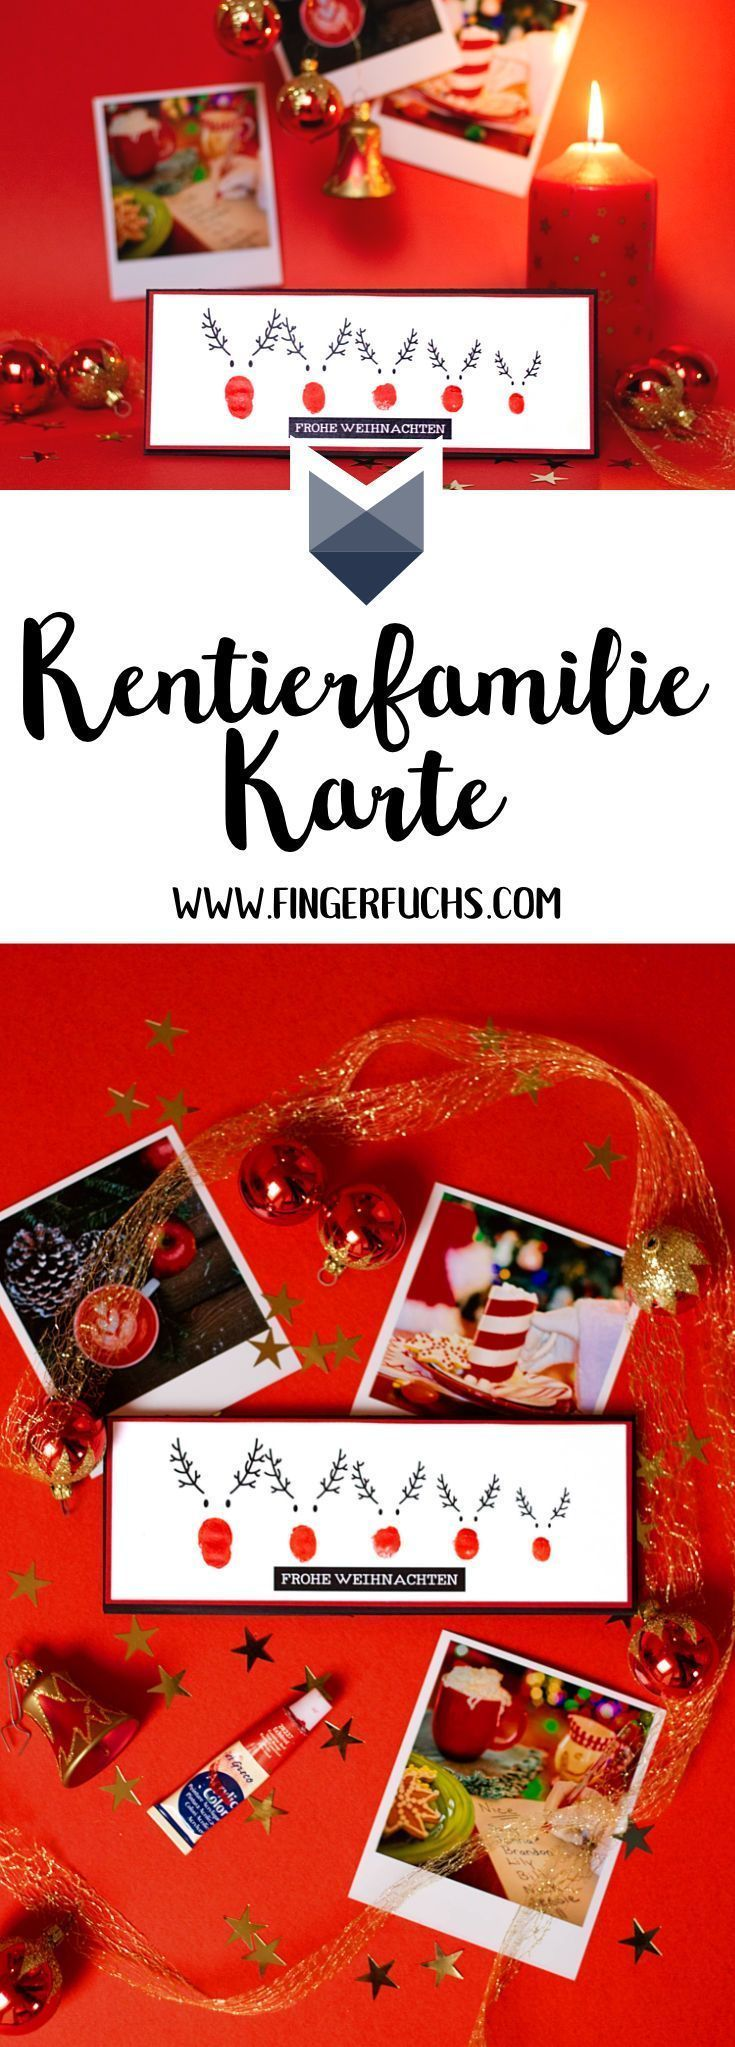 DIY Karte Rentierfamilie  Kostenlose Bastelvorlage mit Fingerabdruck  The post DIY Karte Rentierfamilie  Kostenlose Bastelvorlage mit Fingerabdruck appeared first on Adventskalender ideen.  DIY Karte Rentierfamilie  Kostenlose Bastelvorlage mit Fingerabdruck  The post DIY Karte Rentierfamilie  Kostenlose Bastelvorlage mit Fingerabdruck appeared first on Adventskalender ideen. #adventlustigerster